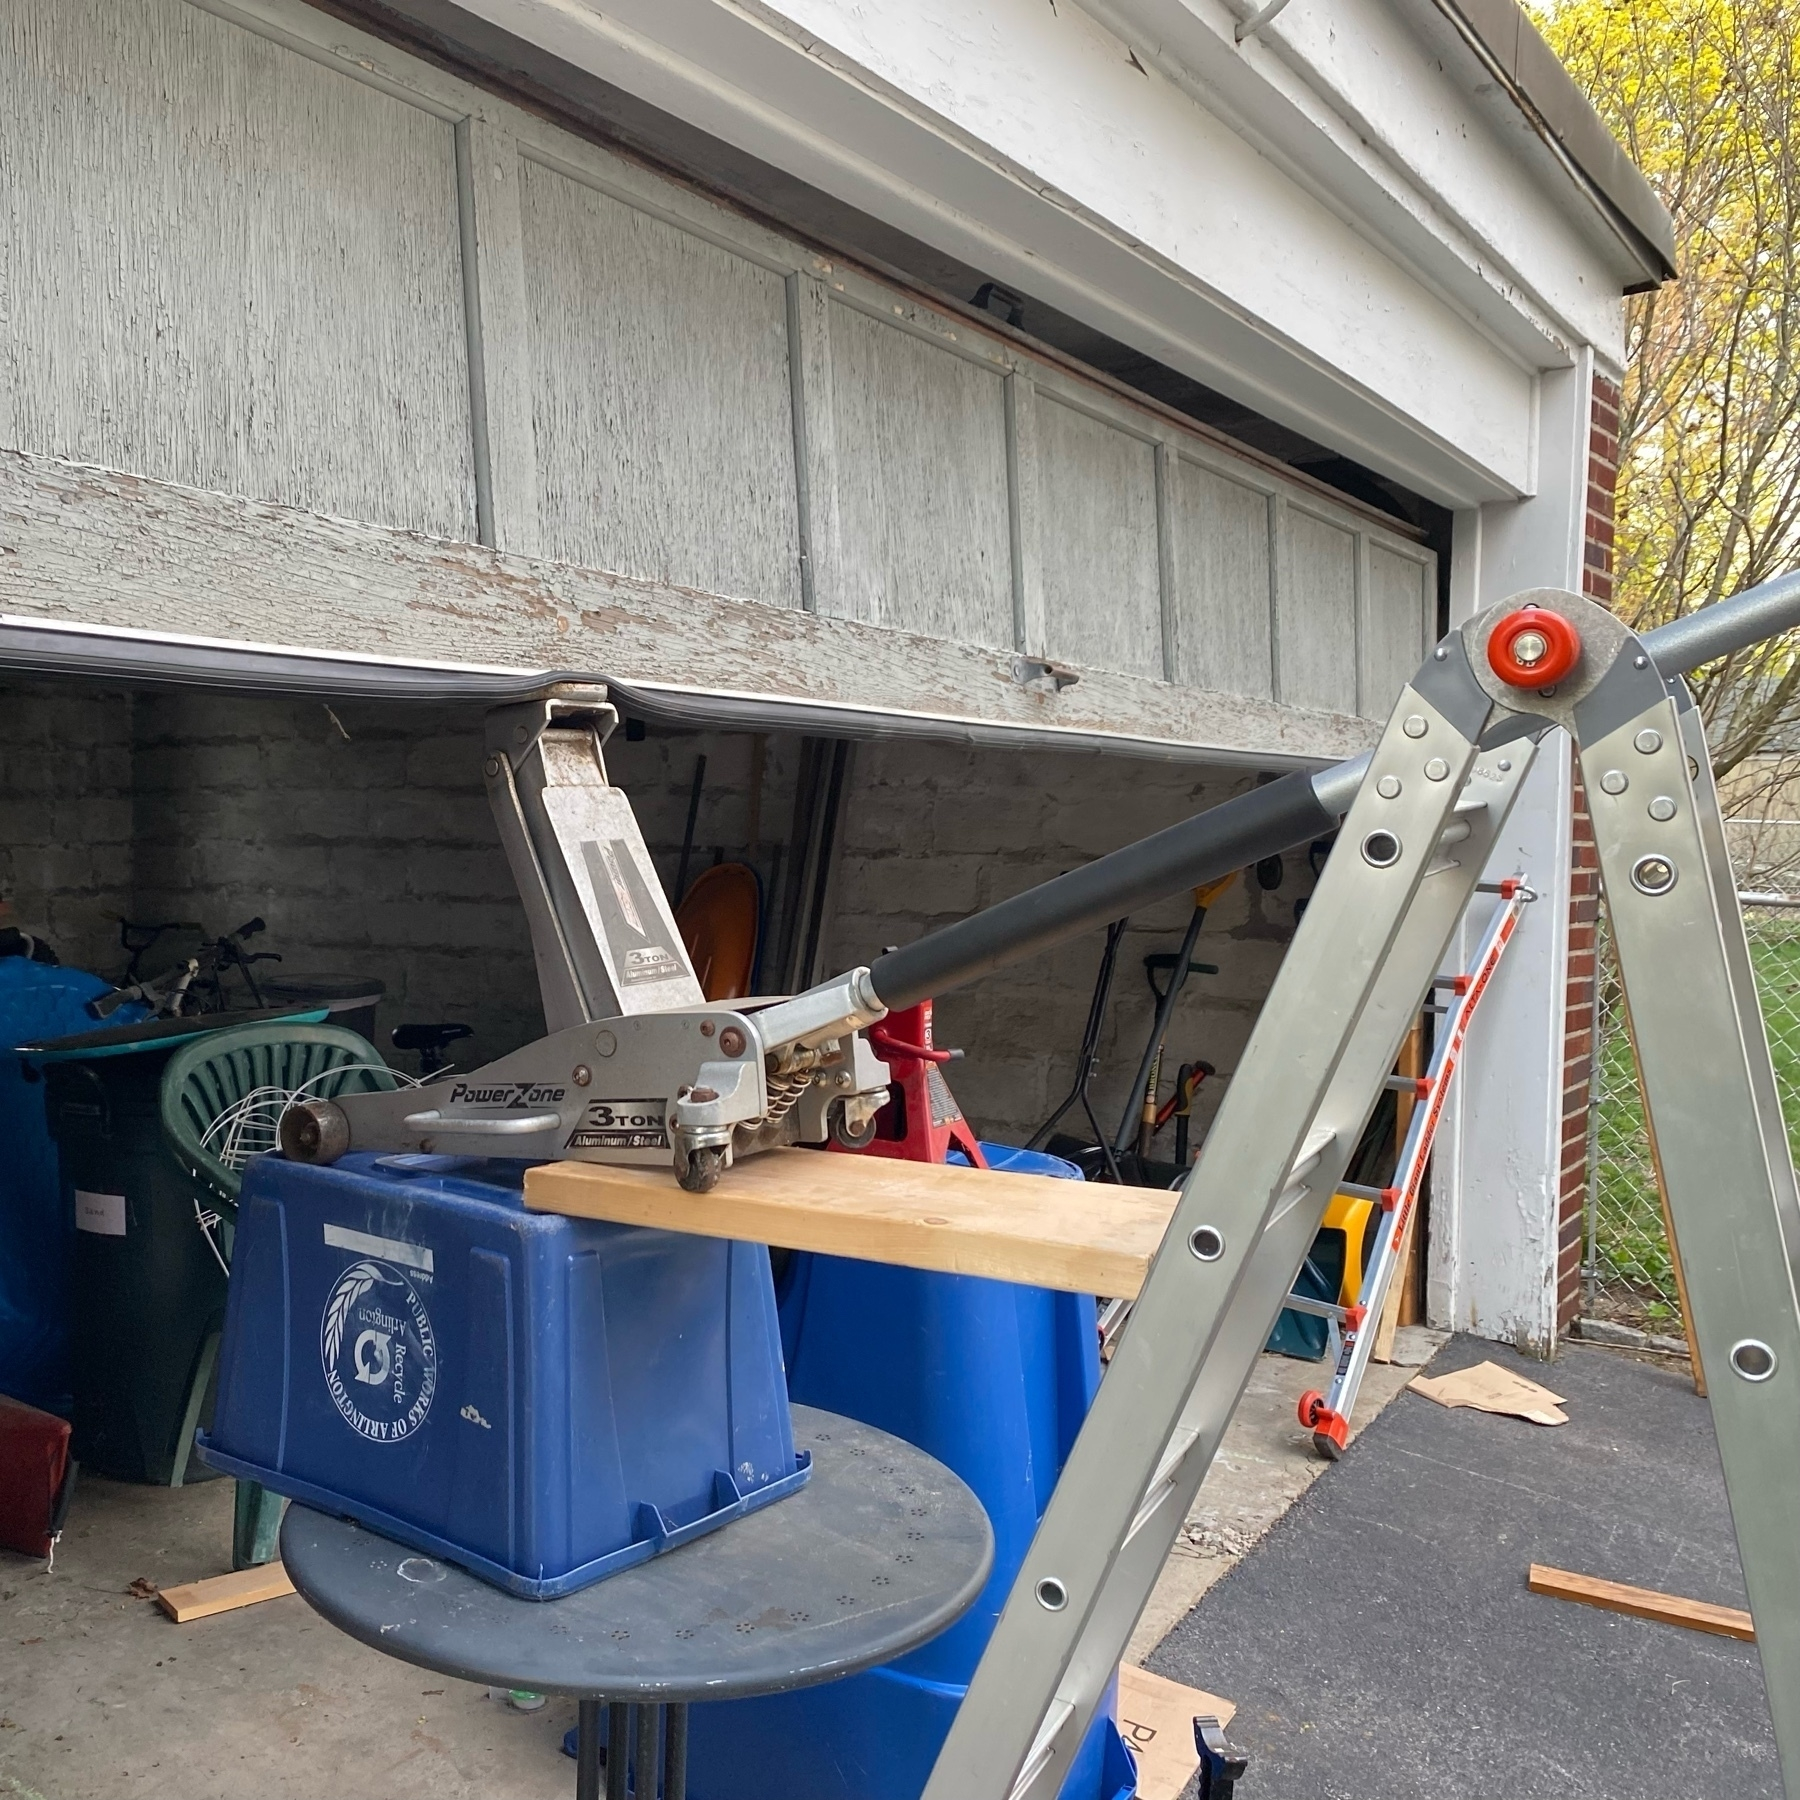 pictue of a garage door being held open by a contrived combination of table, recyling bin, and automotive floor jack